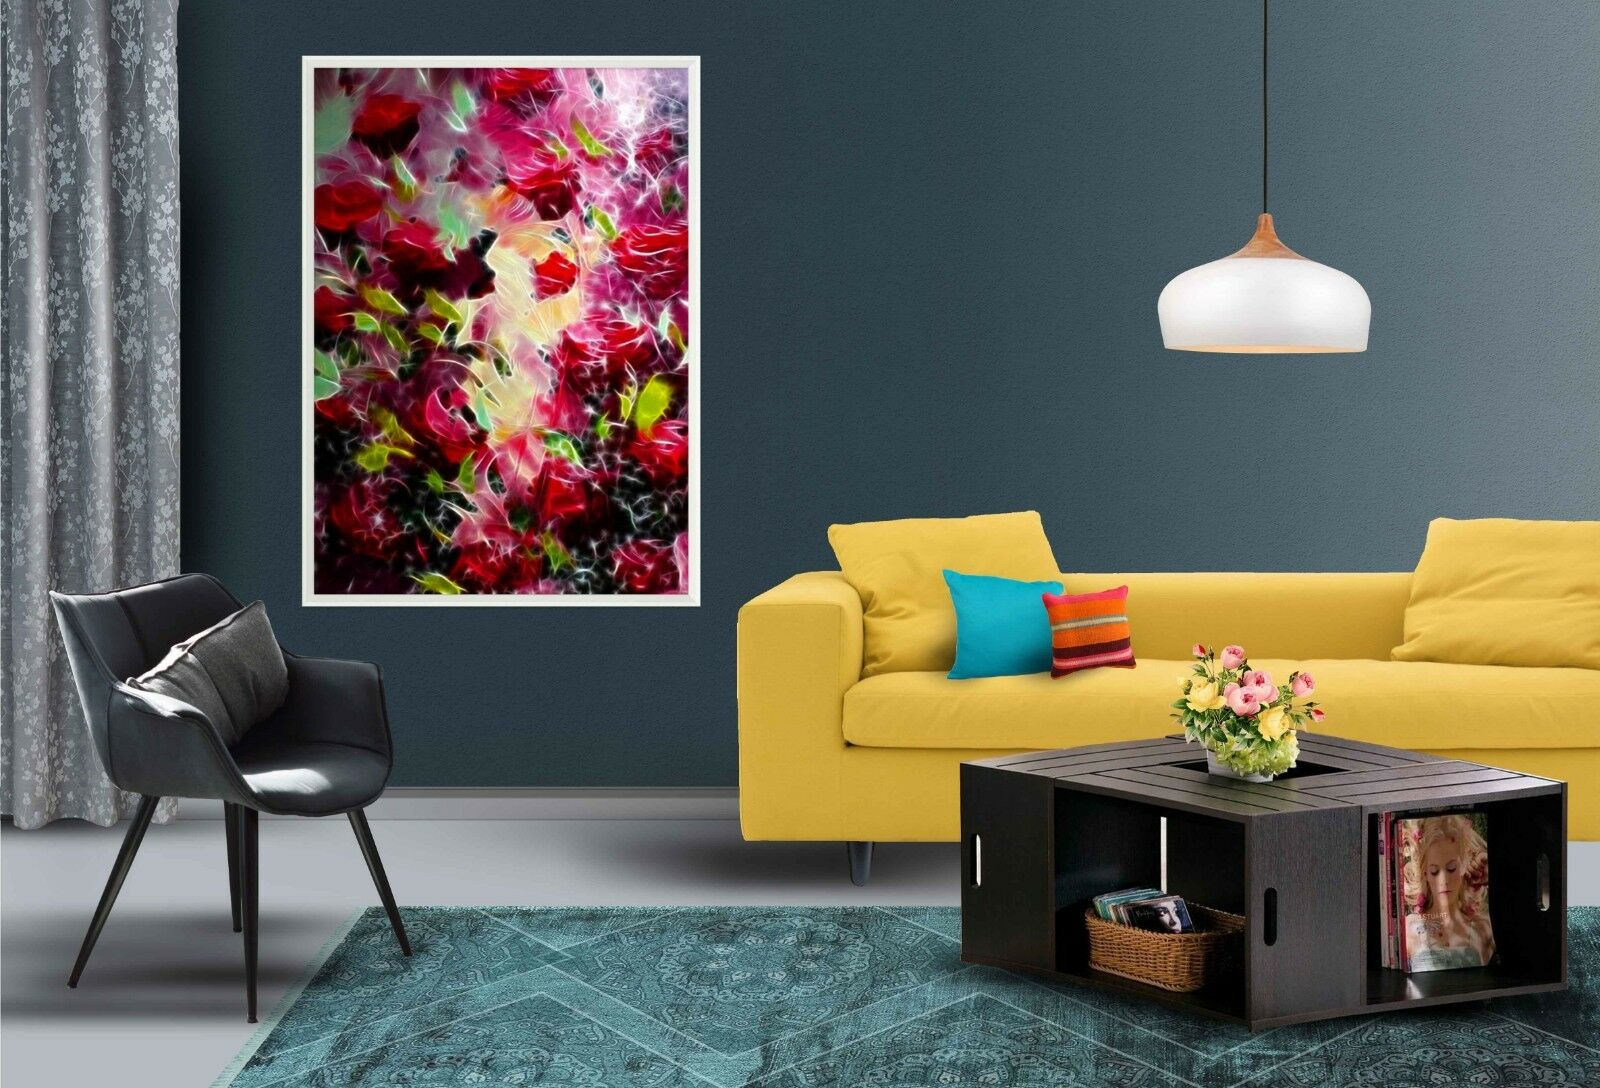 3D Abstract Floral 32 Framed Poster Home Decor Print Painting Art AJ WALLPAPER